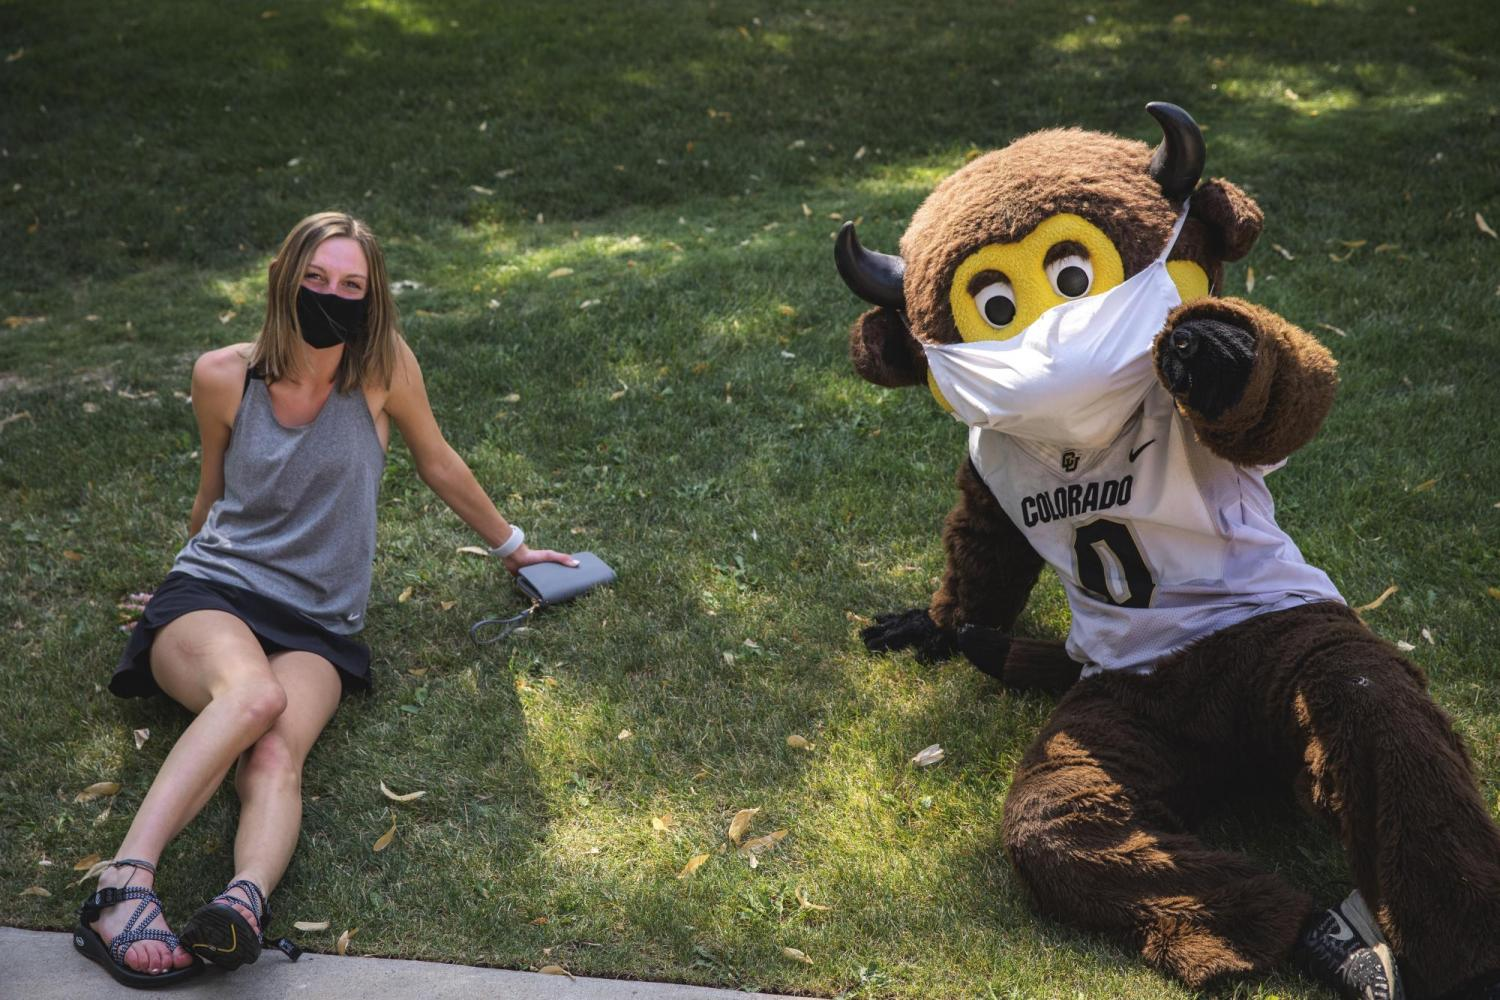 chip the mascot giving a peace sign with a student